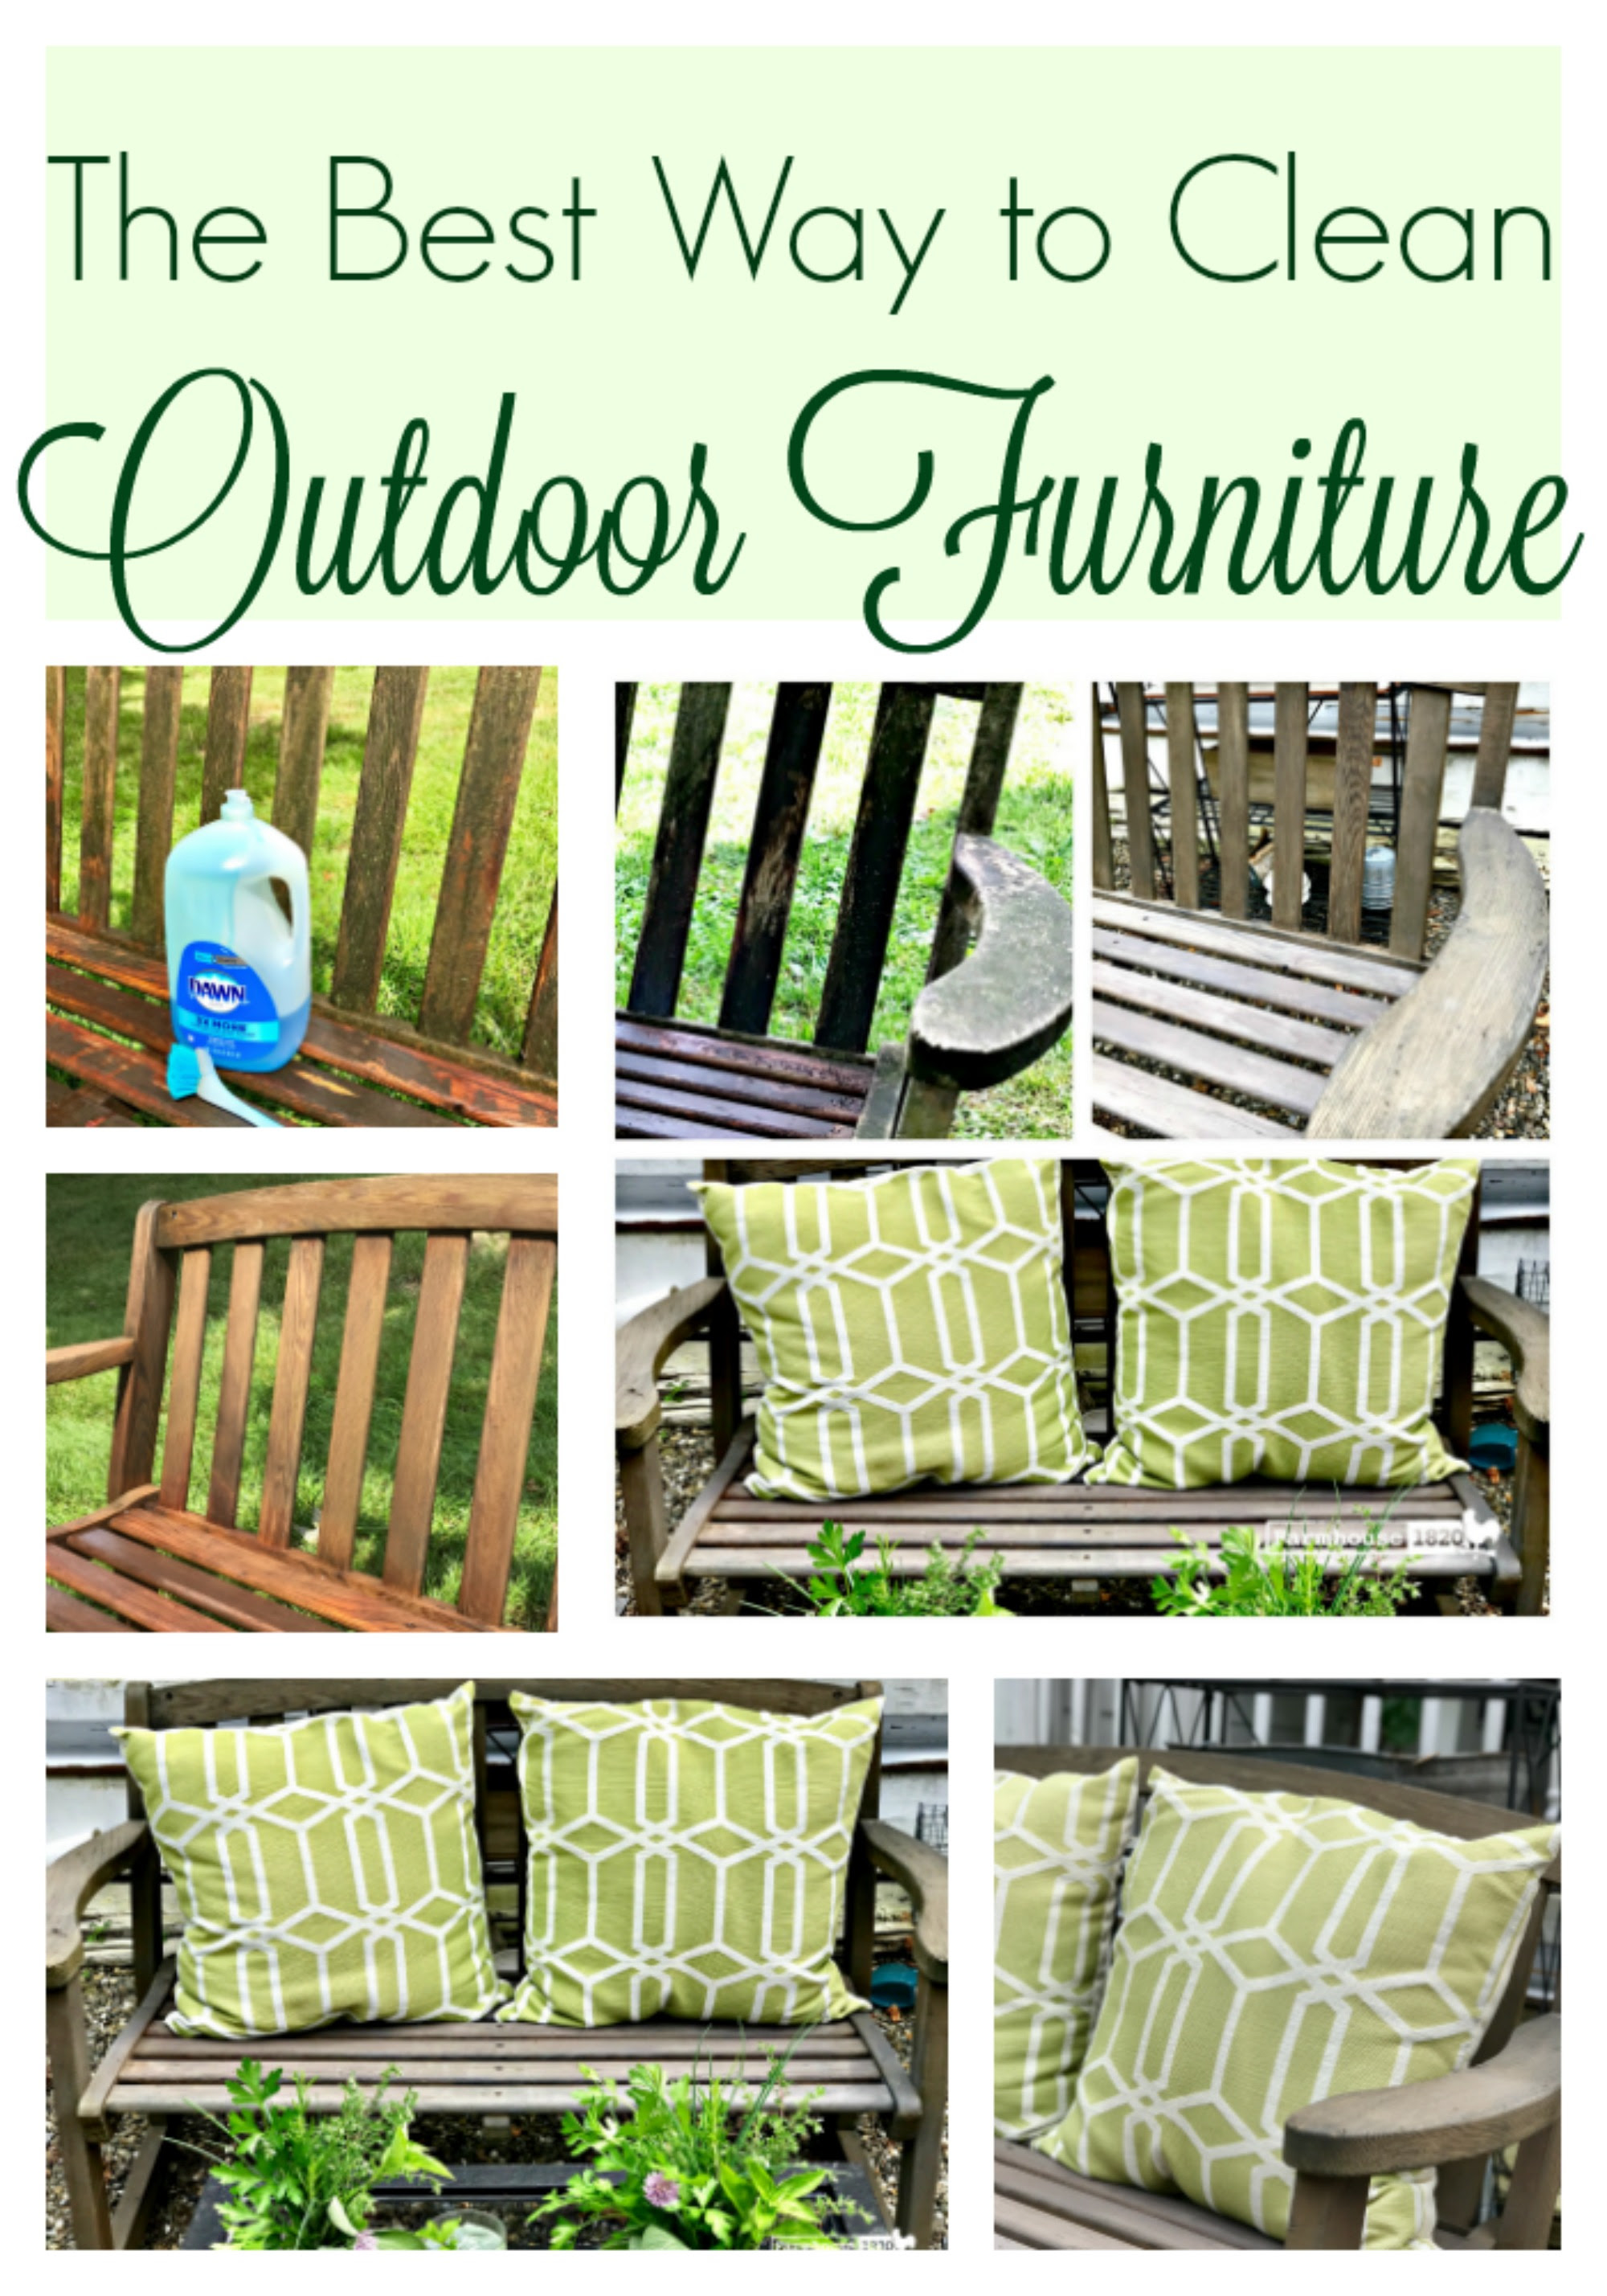 The Best Way To Clean Outdoor Furniture - Farmhouse 1820